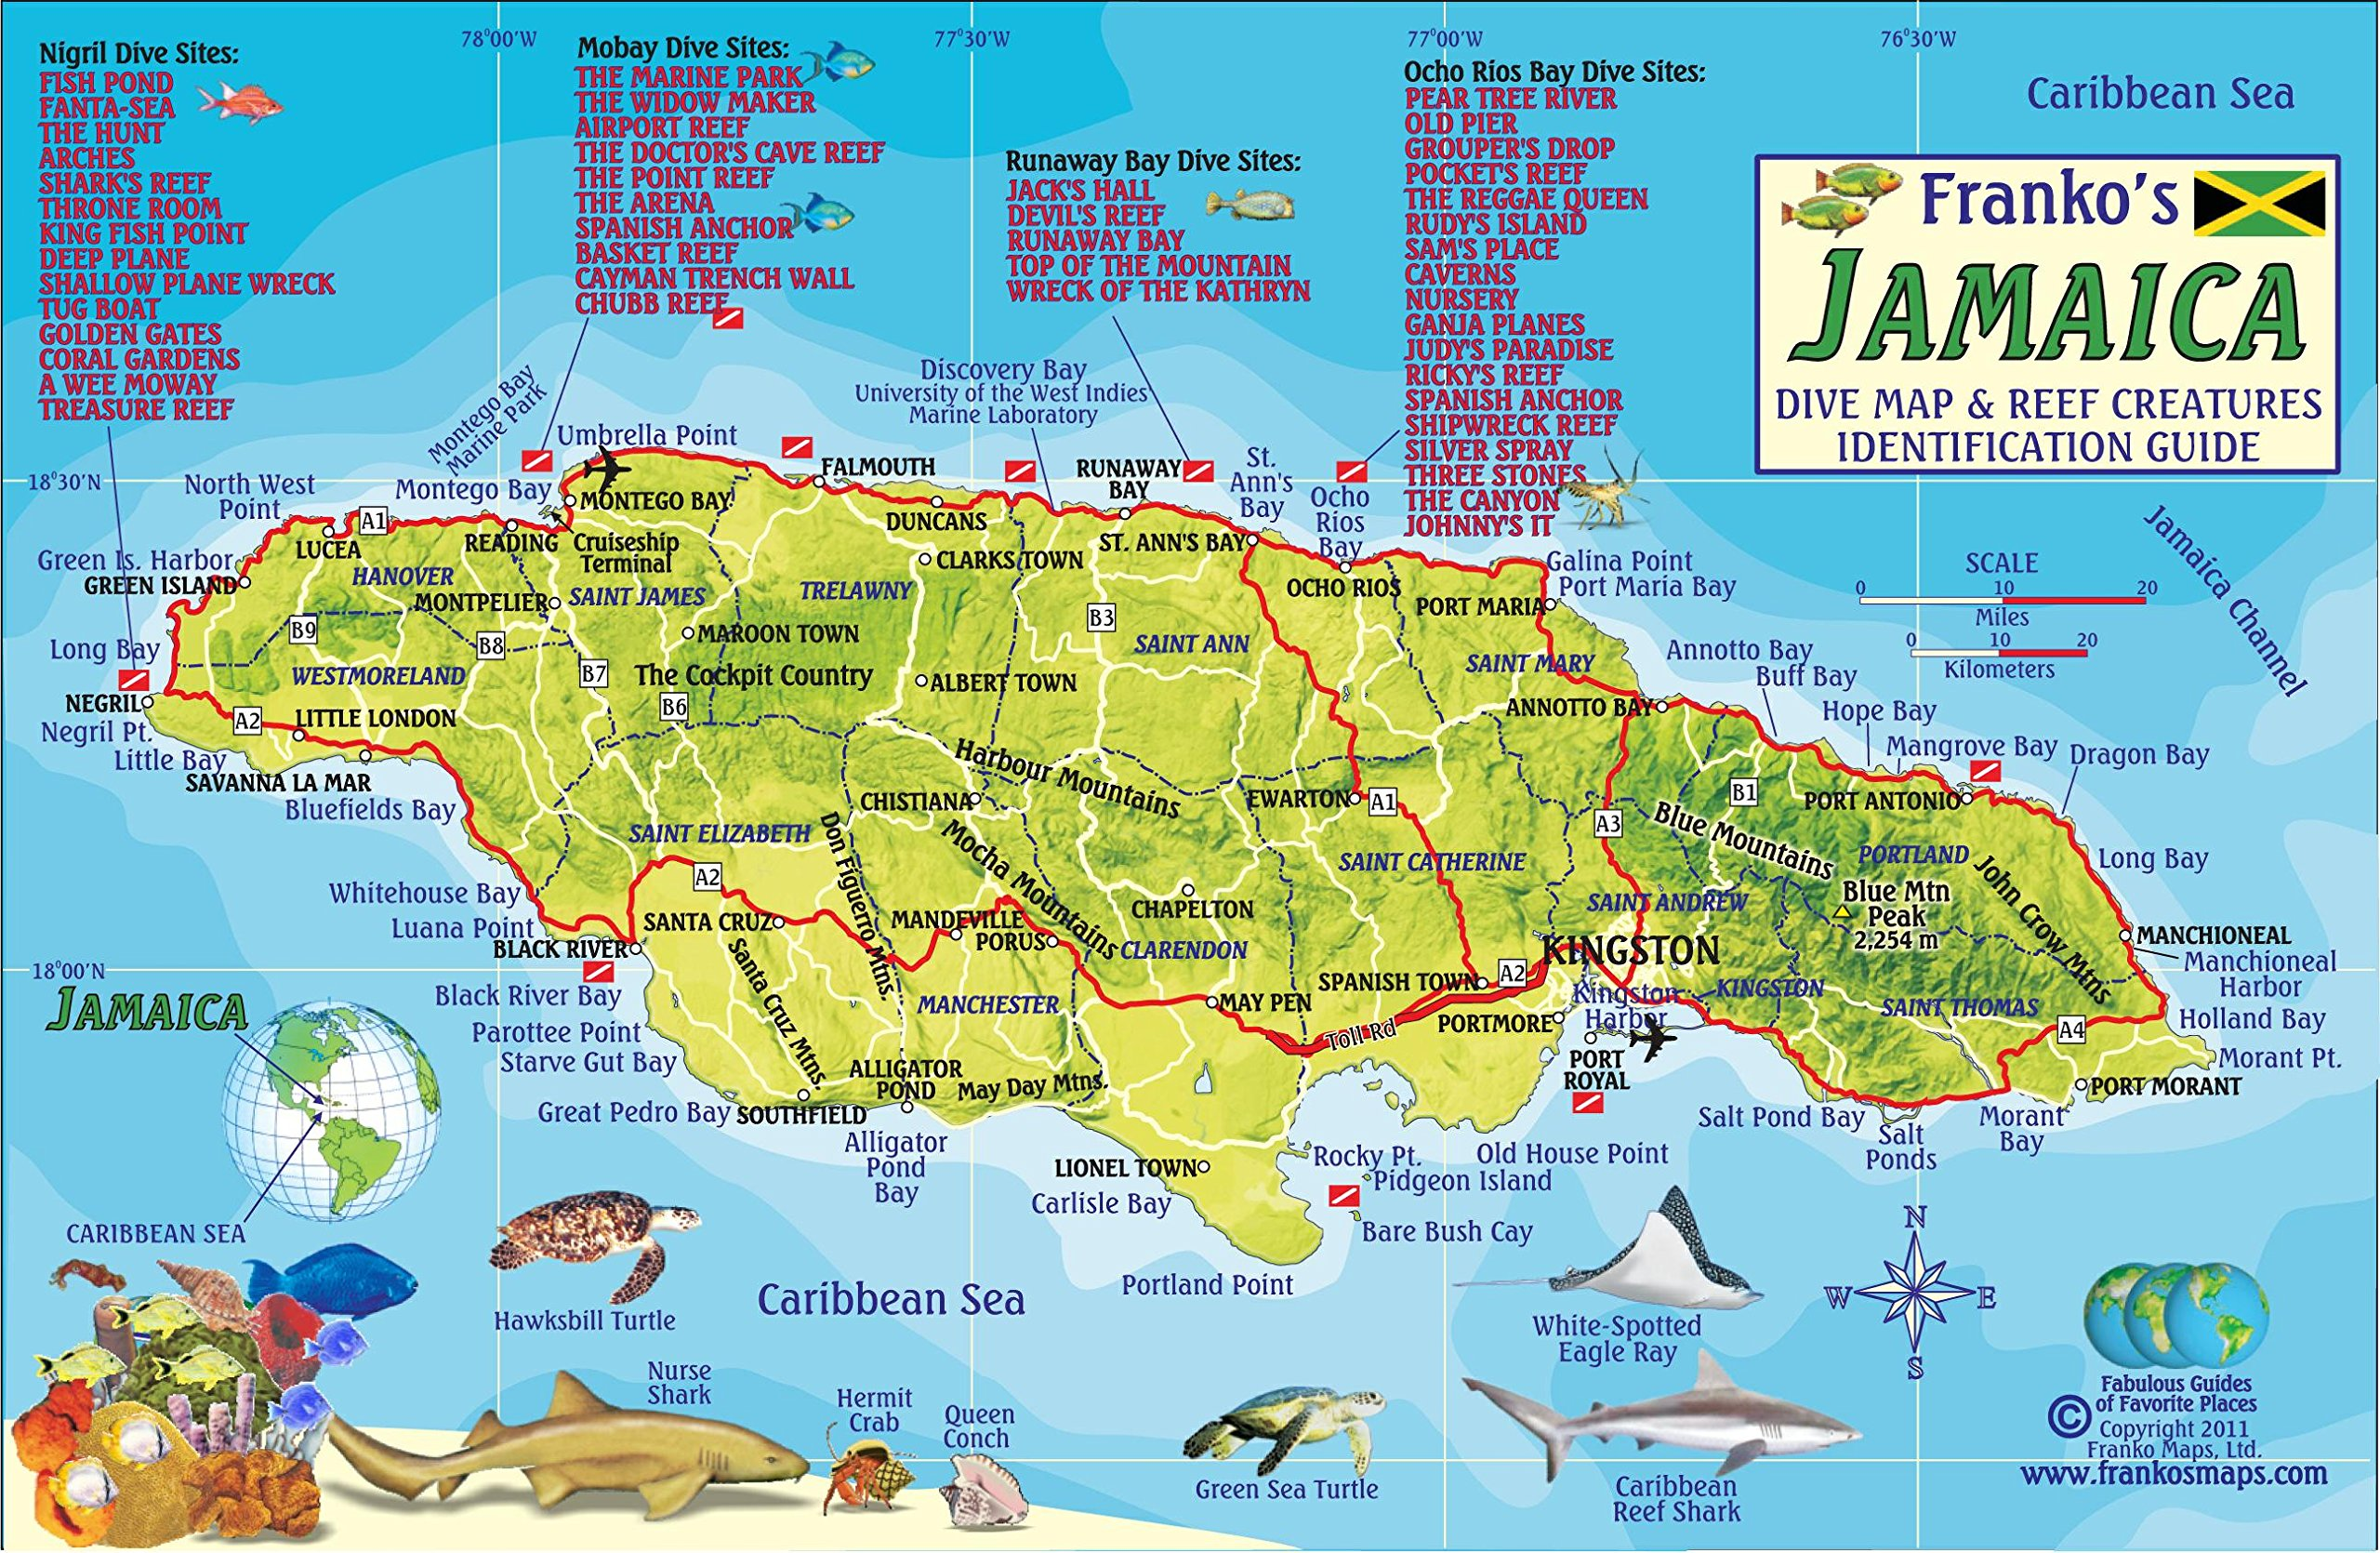 Jamaica Dive Map Coral Reef Creatures Guide Franko Maps - Jamaica map caribbean sea